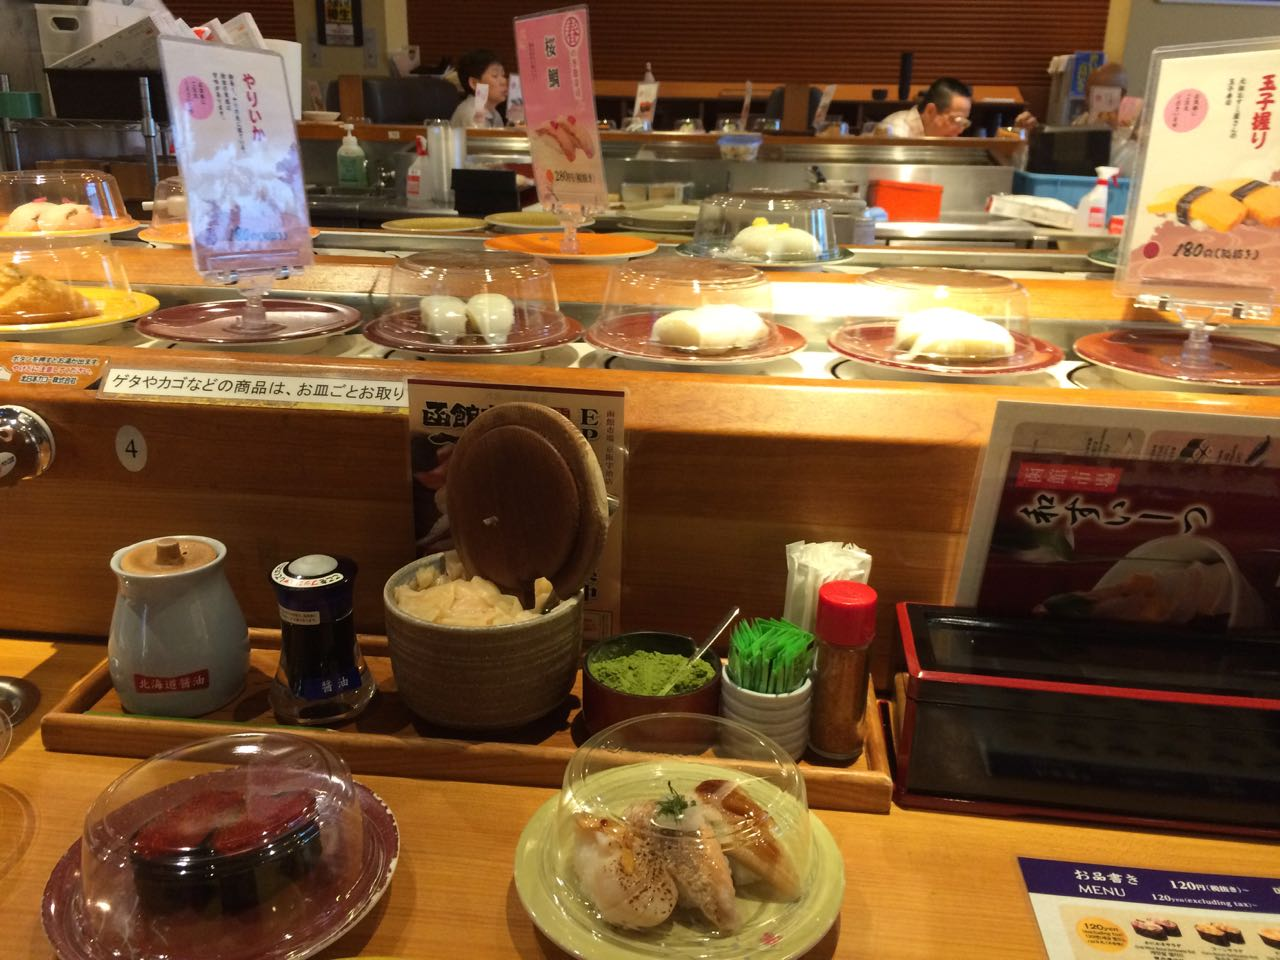 Kaitenzushi (conveyor-belt sushi) near the station.  Note the cup of matcha sitting in the row of condiments between the gari ginger and wasabi.